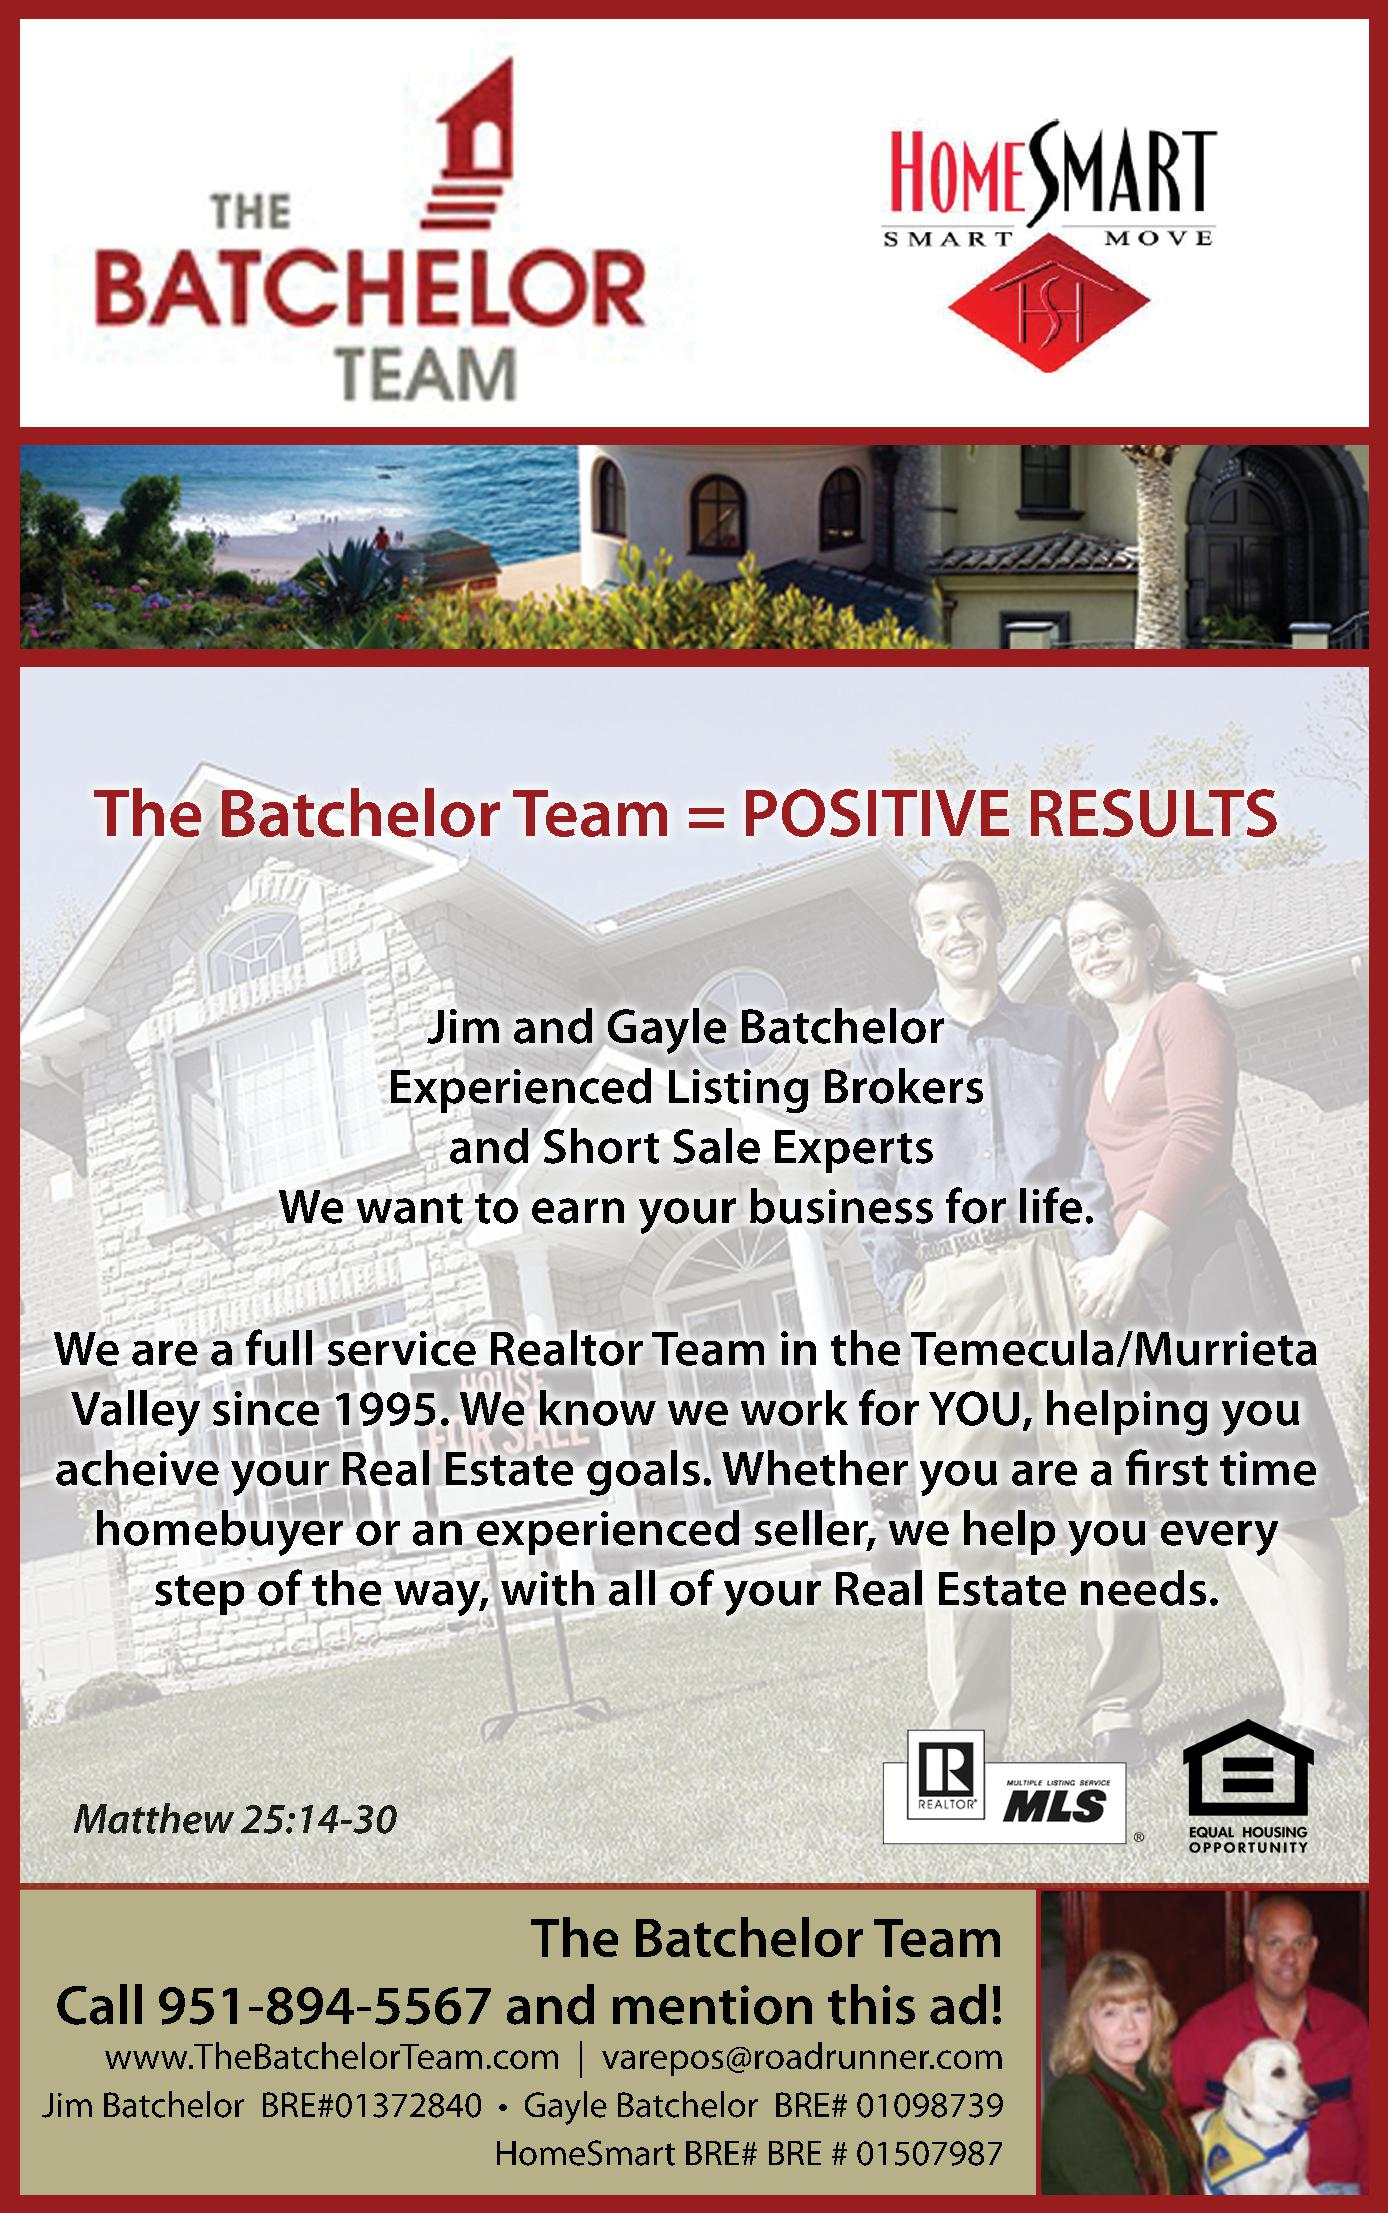 Home Smart - The Batchelor Team